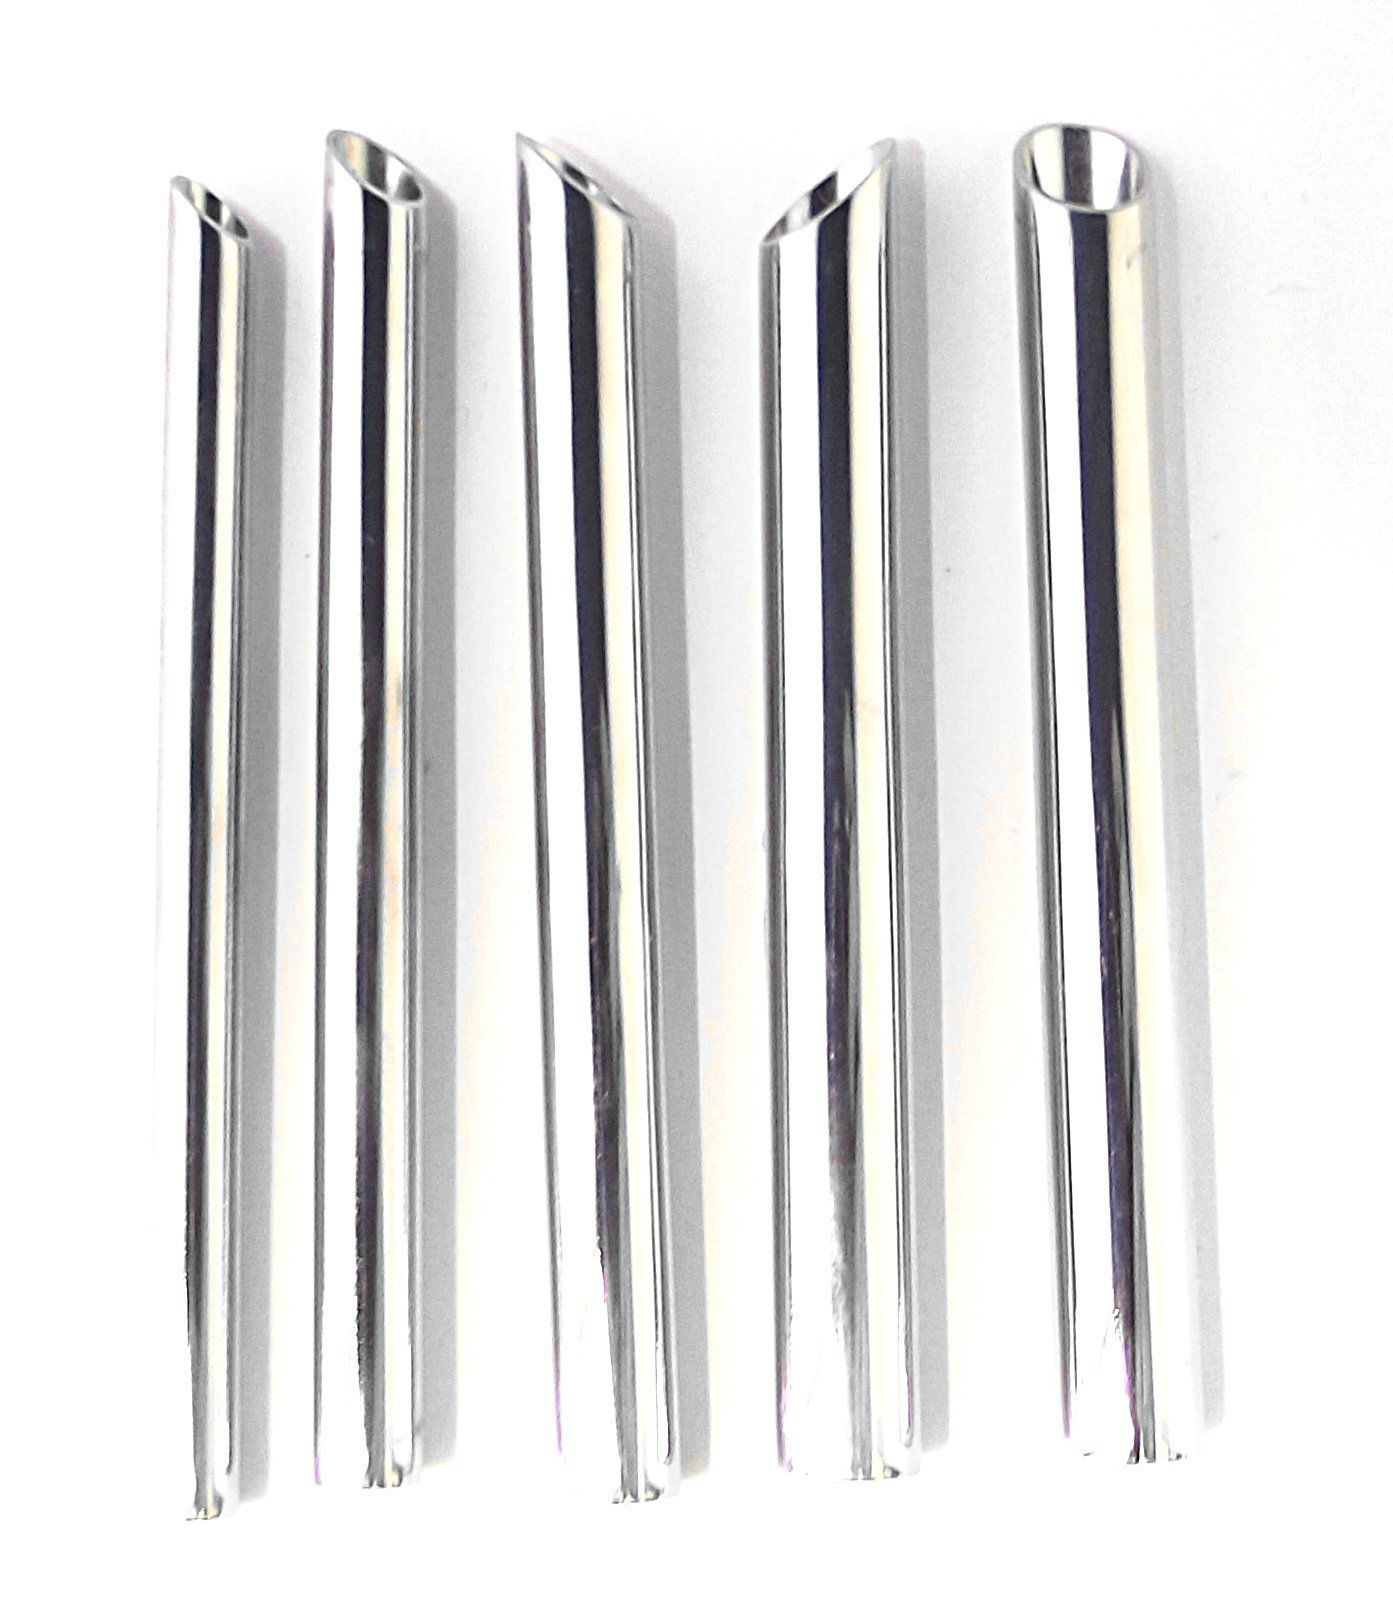 Body piercing needle   AUD  L Surgical Steel Body Piercing Needle Receiving Tube